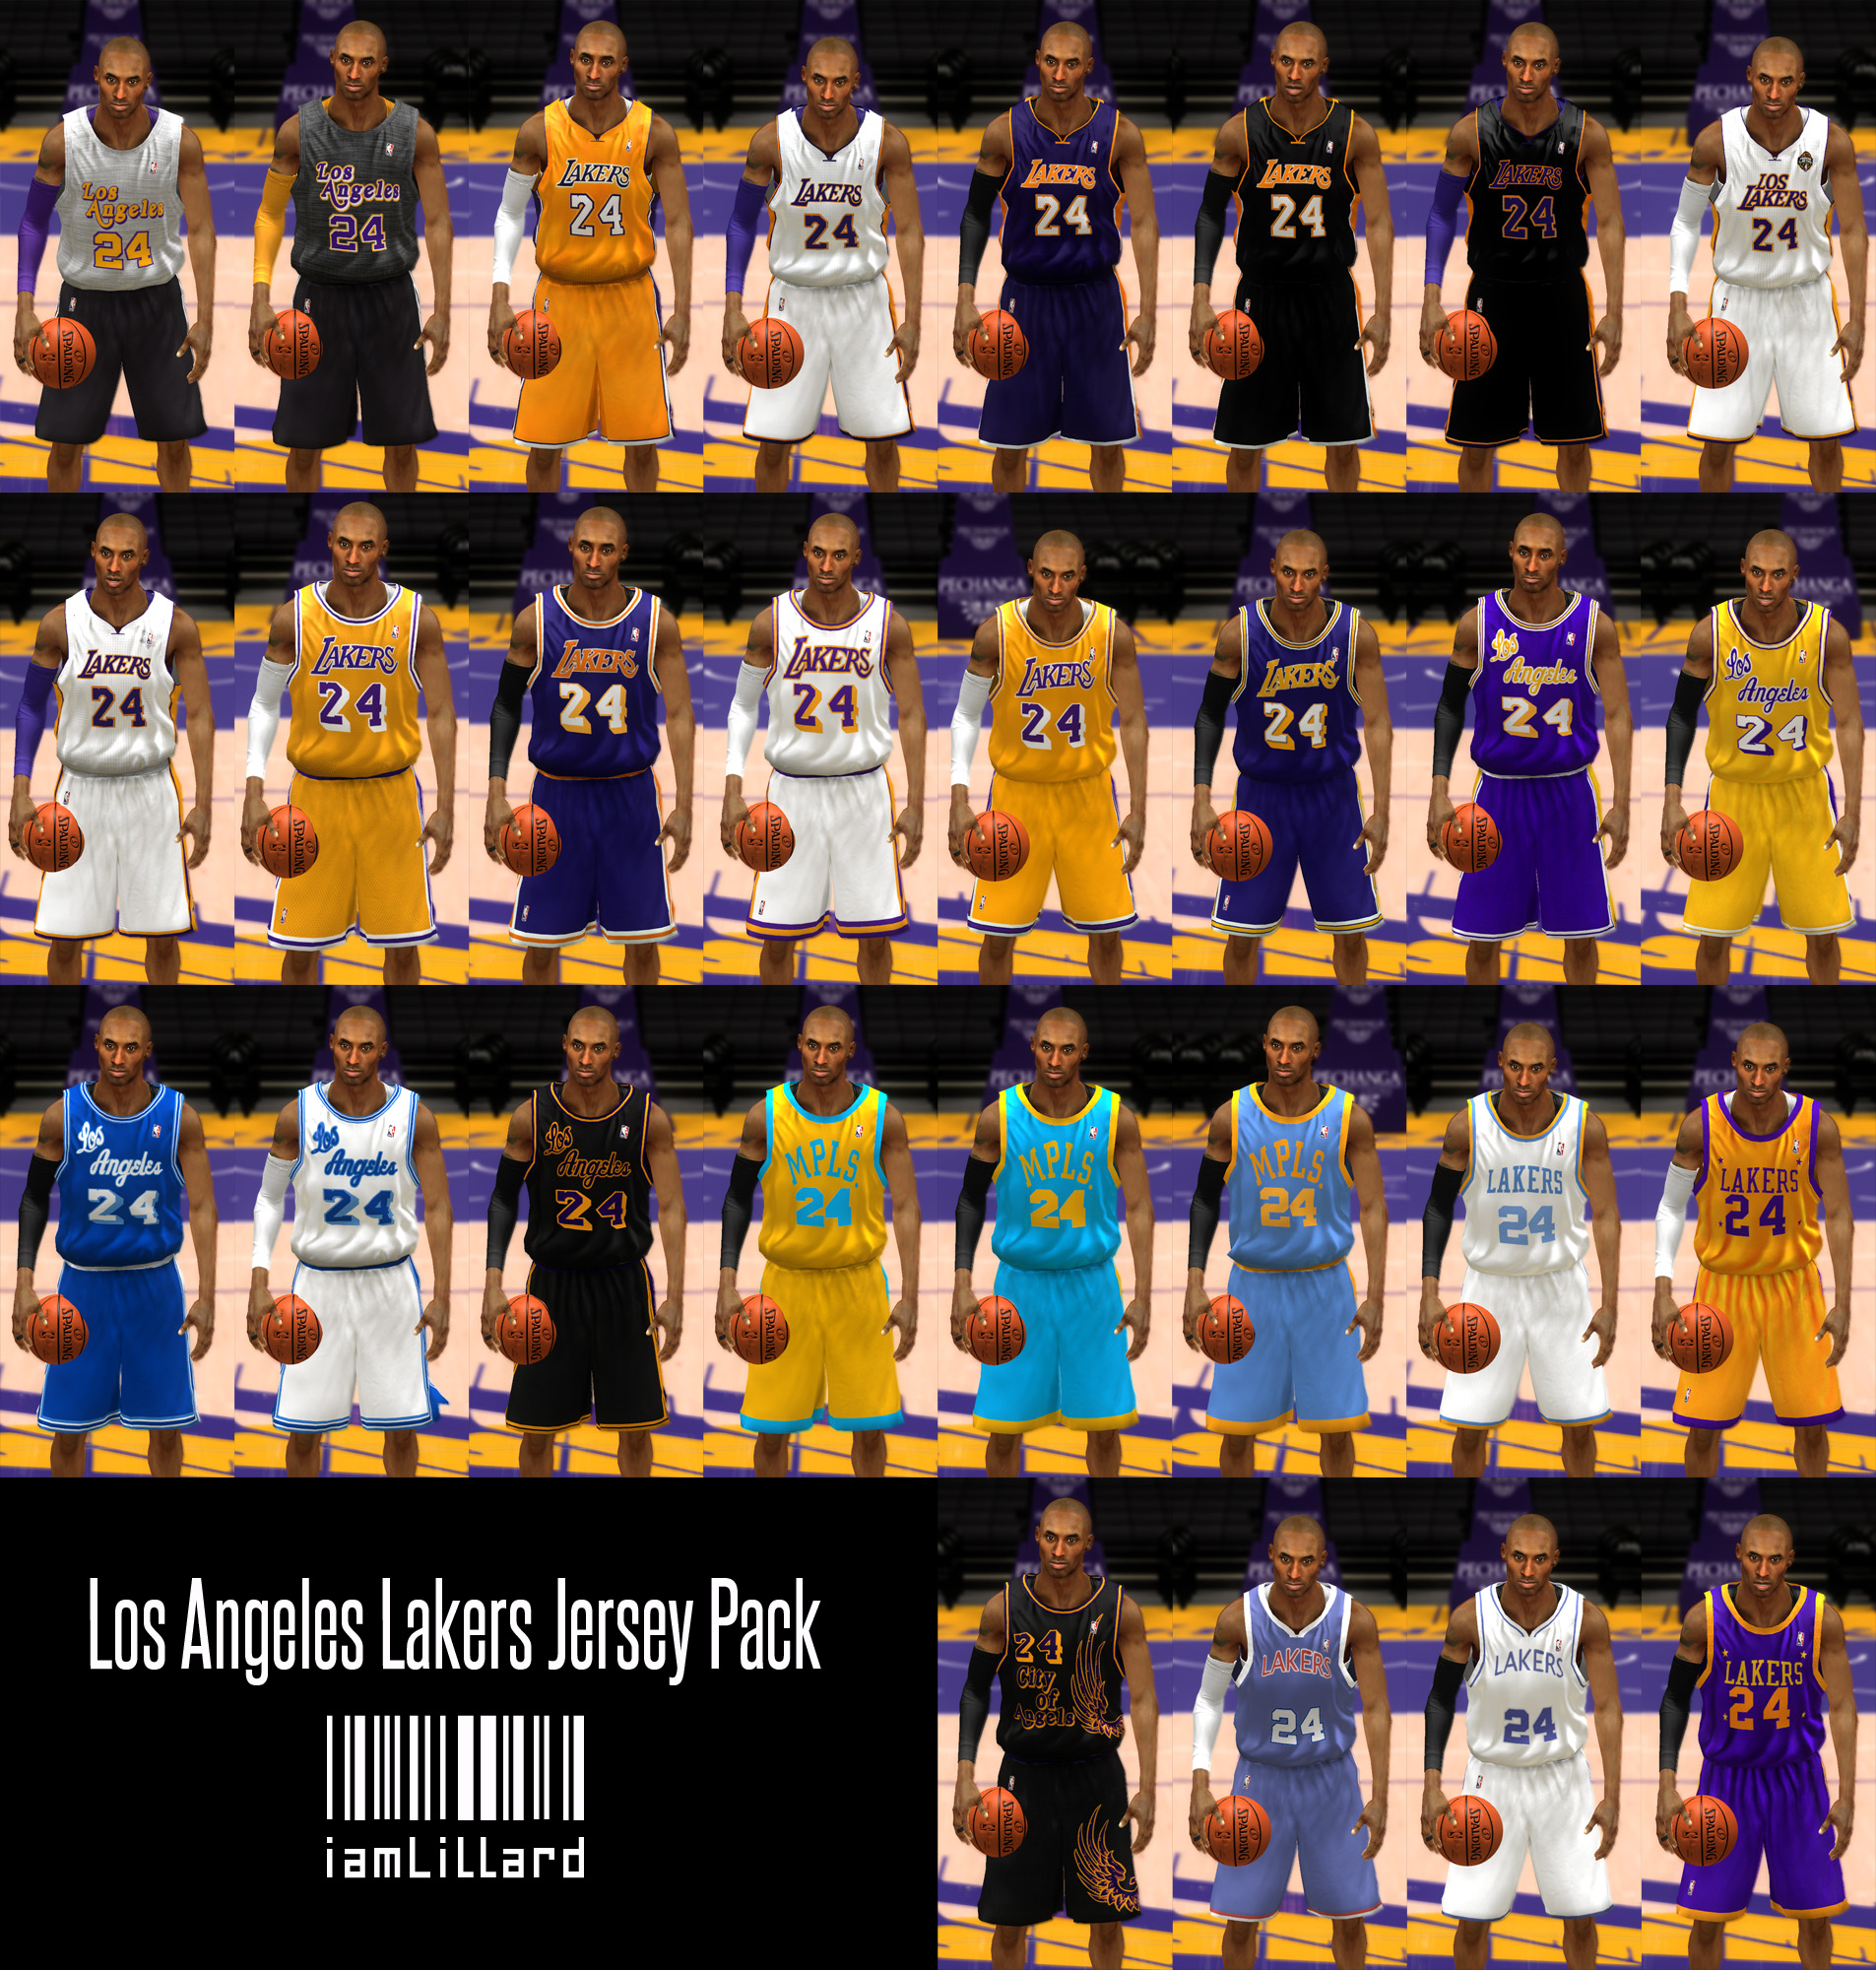 UJP Los Angeles Lakers Jersey